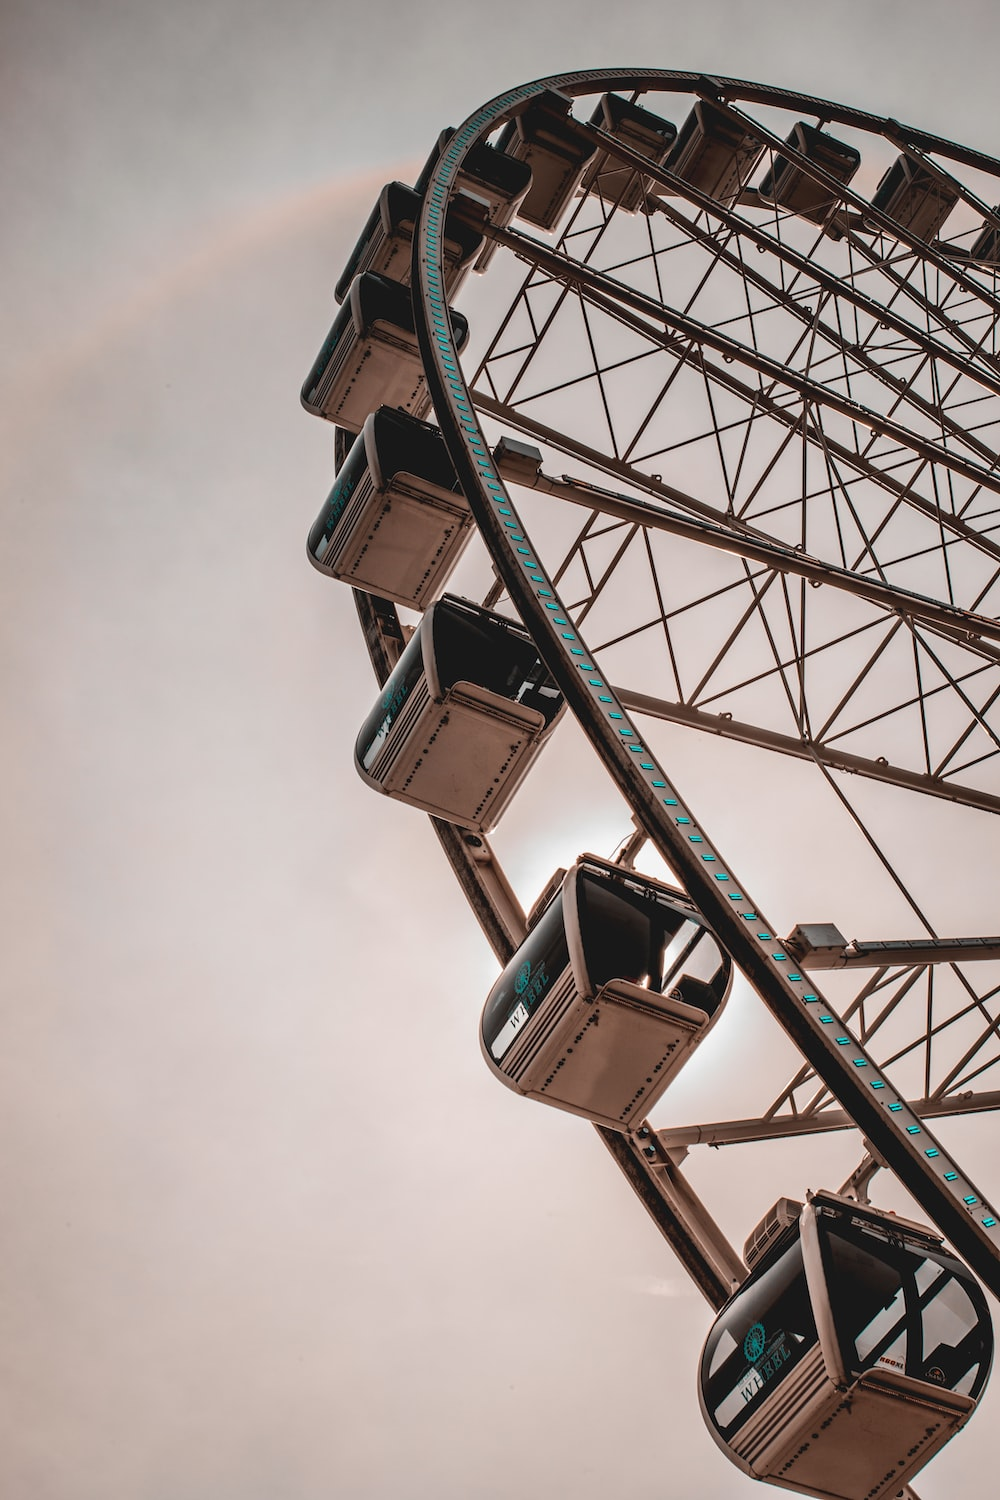 low-angle photography of brown ferris wheel